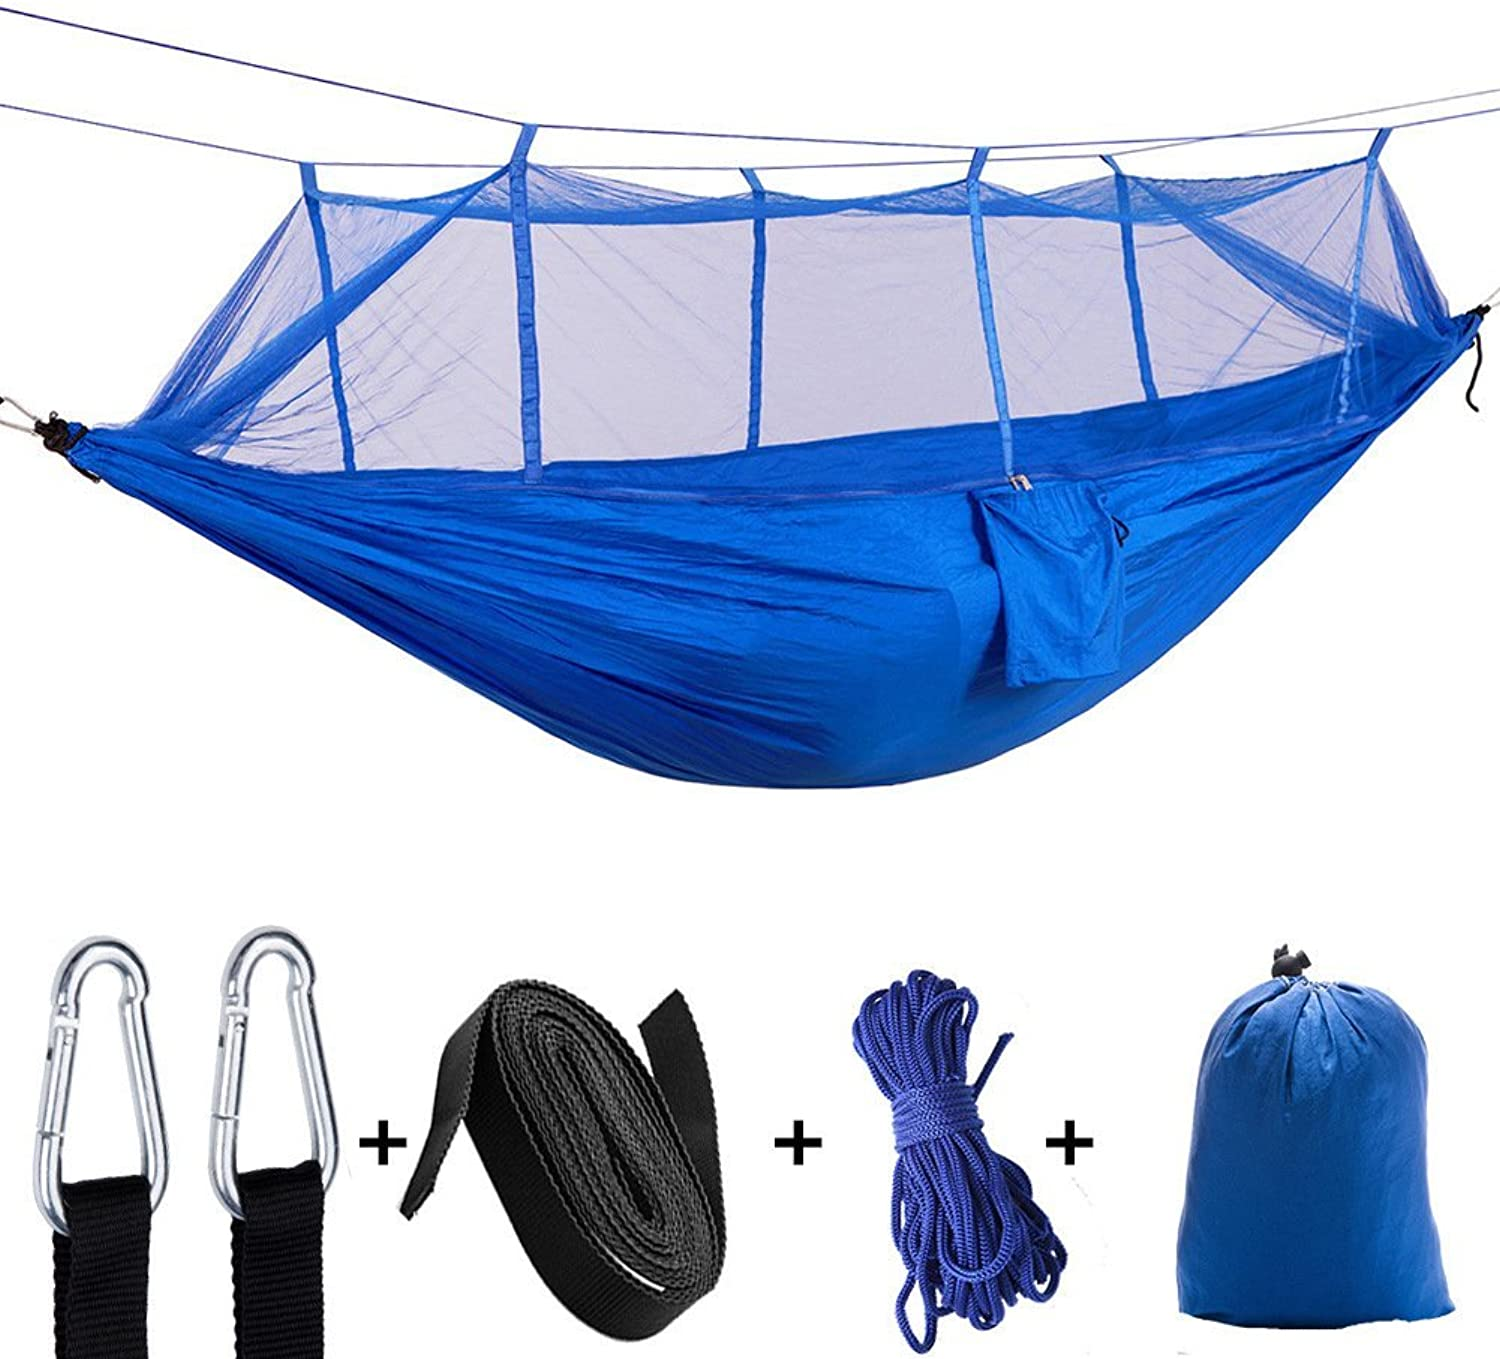 Double Camping Hammock with Mosquito Net, Lightweight Portable Parachute Hammocks for Camping, Backpacking, Survival, Travel and More,bluee